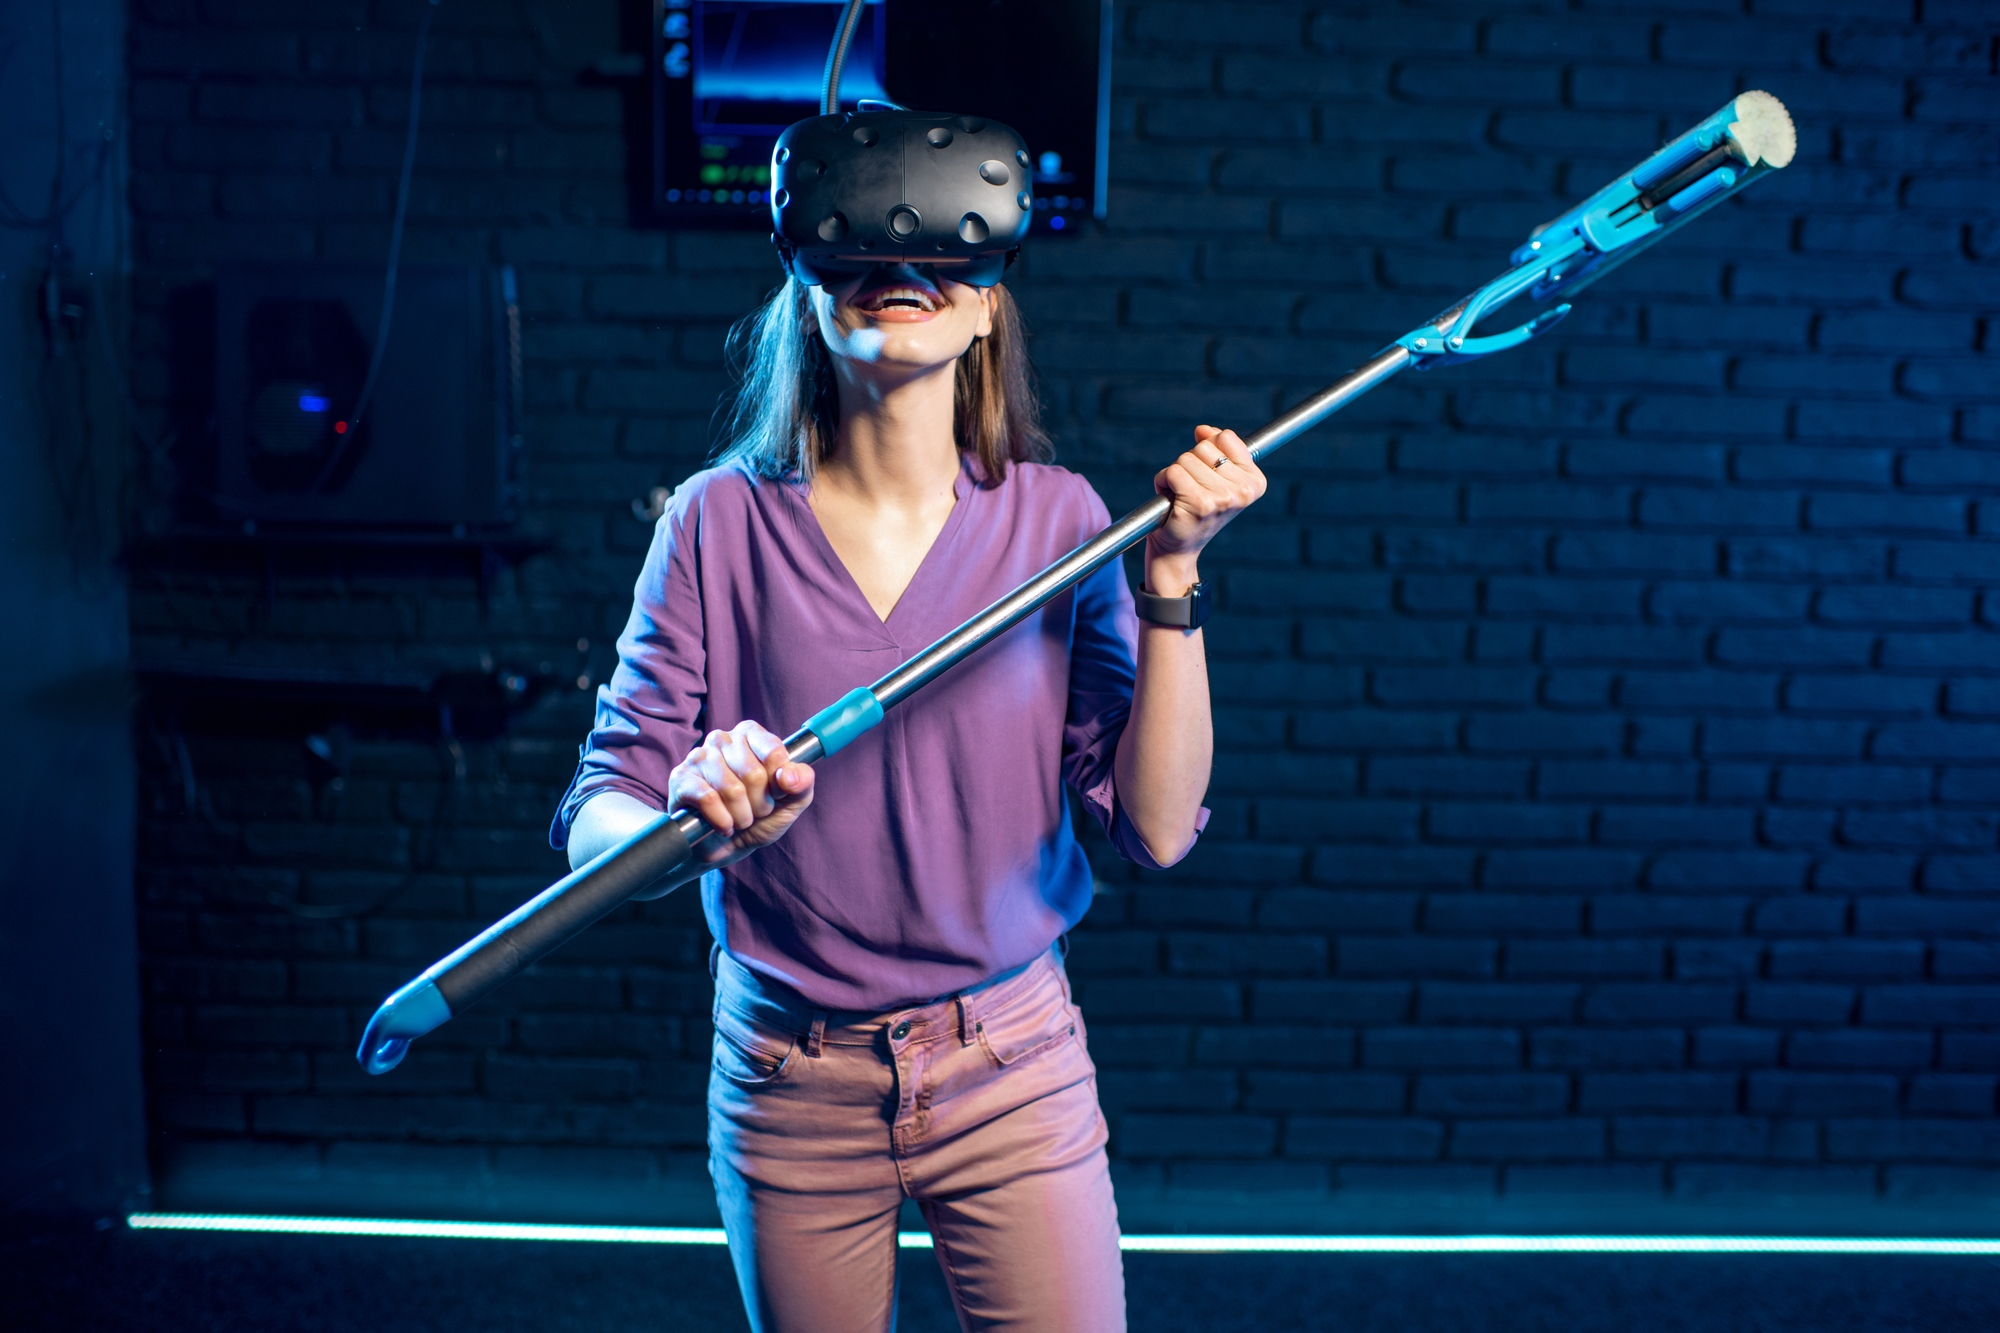 Woman in virtual reality imagines herself as a housewife standing with washing swab indoors